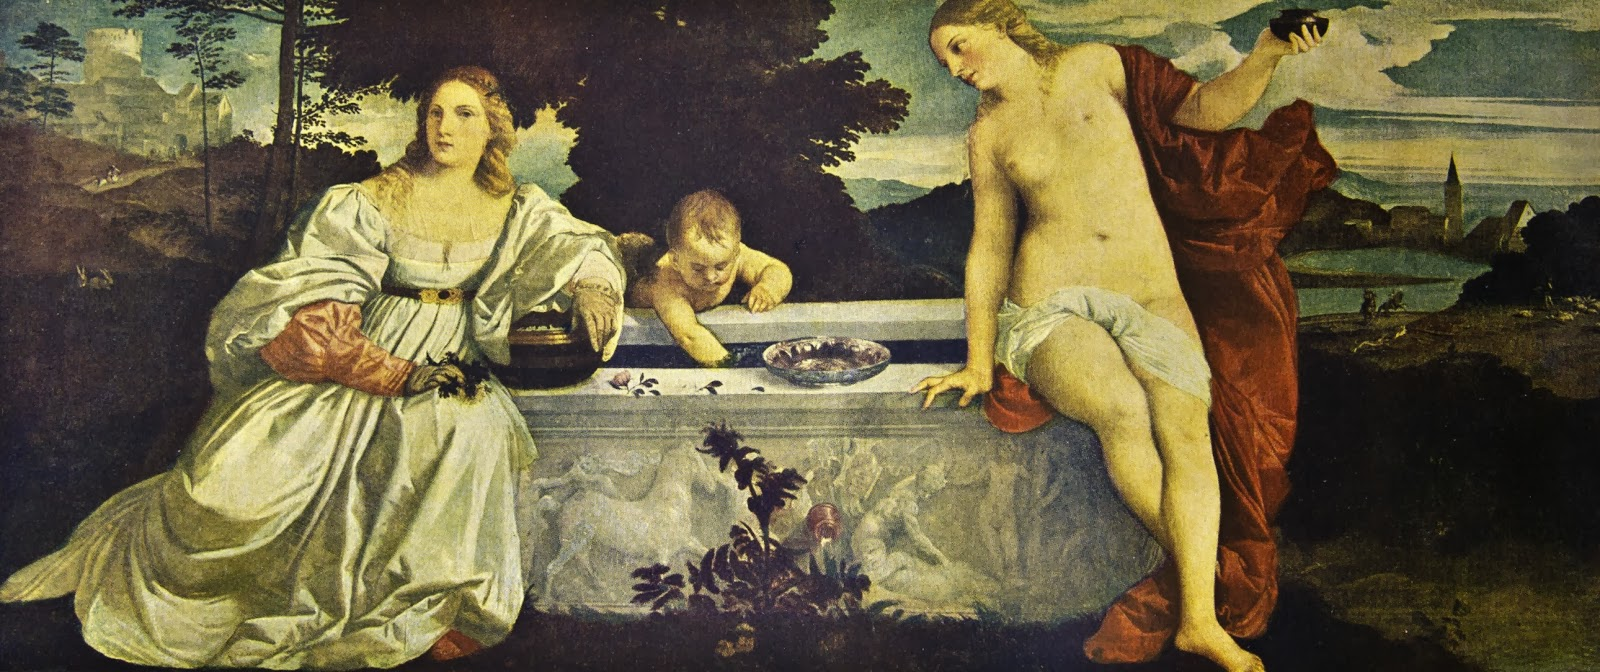 a biography of tiziano vecellio Titian no one knows exactly when the italian artist, tiziano vecellio, was born over the centuries, there has been a great deal of confusion concerning the date, due to a misprint in his.